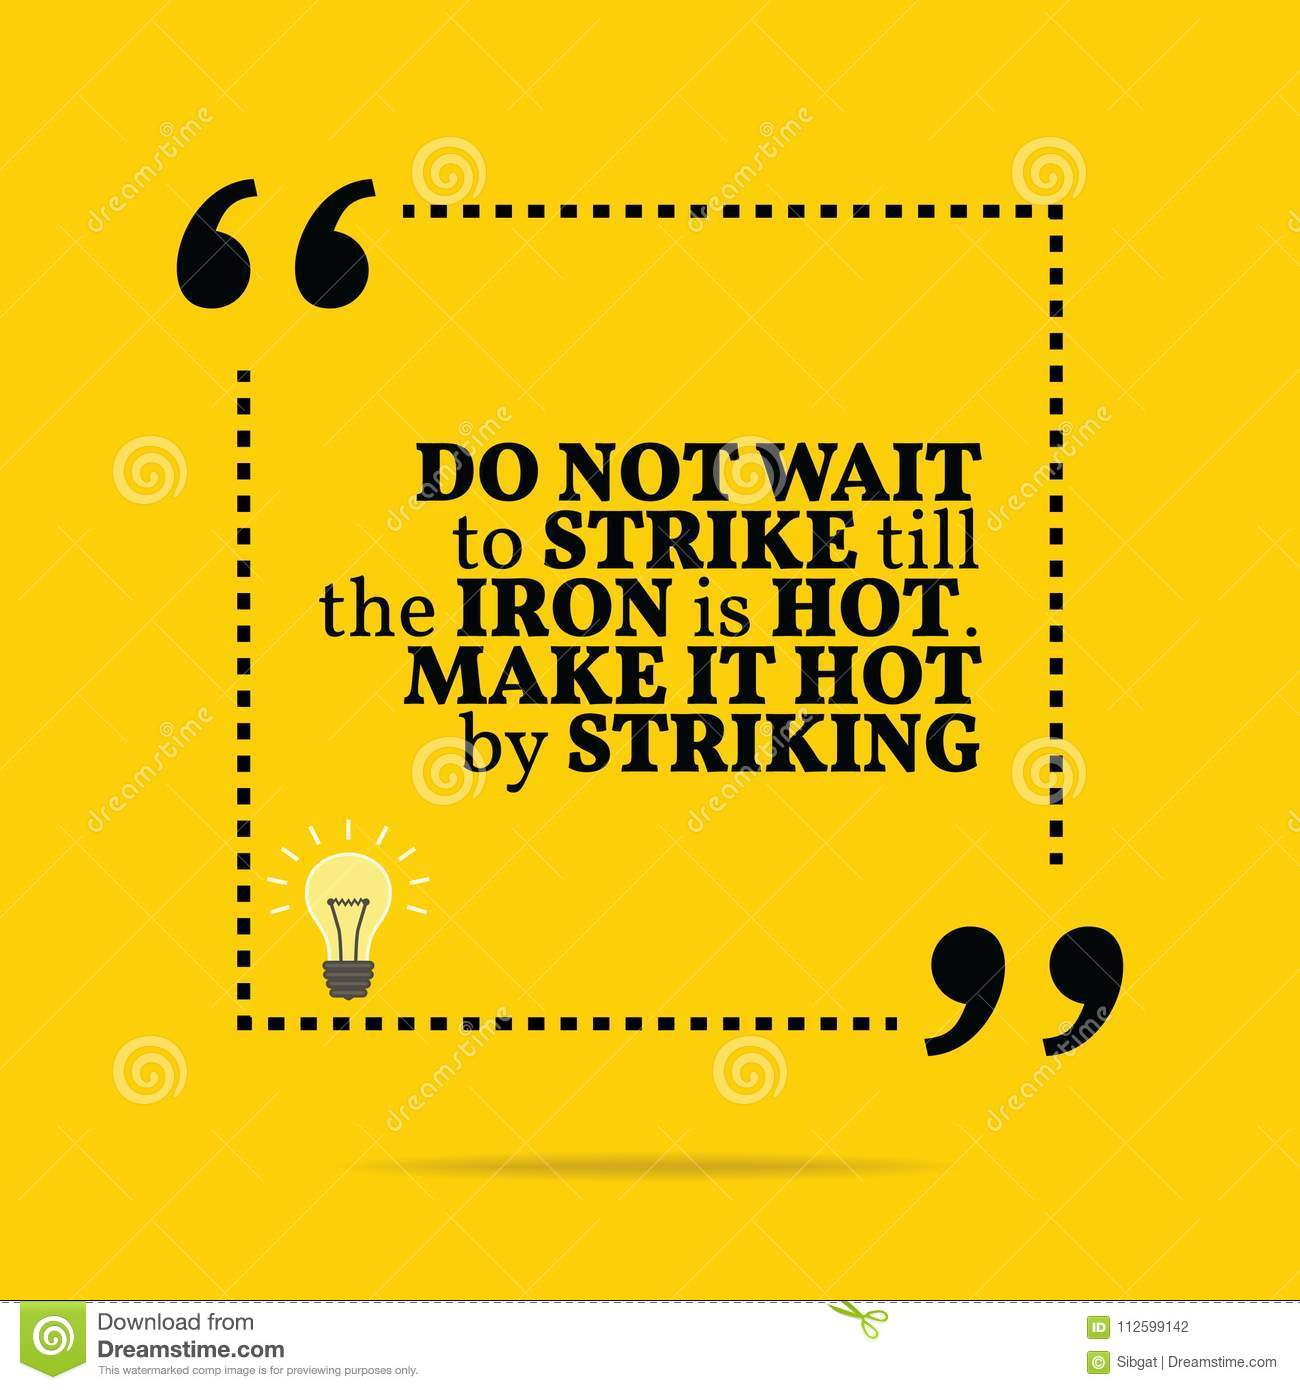 de9636f83e Inspirational motivational quote. Do not wait to strike till the iron is  hot. Make it hot by striking. Simple trendy design.